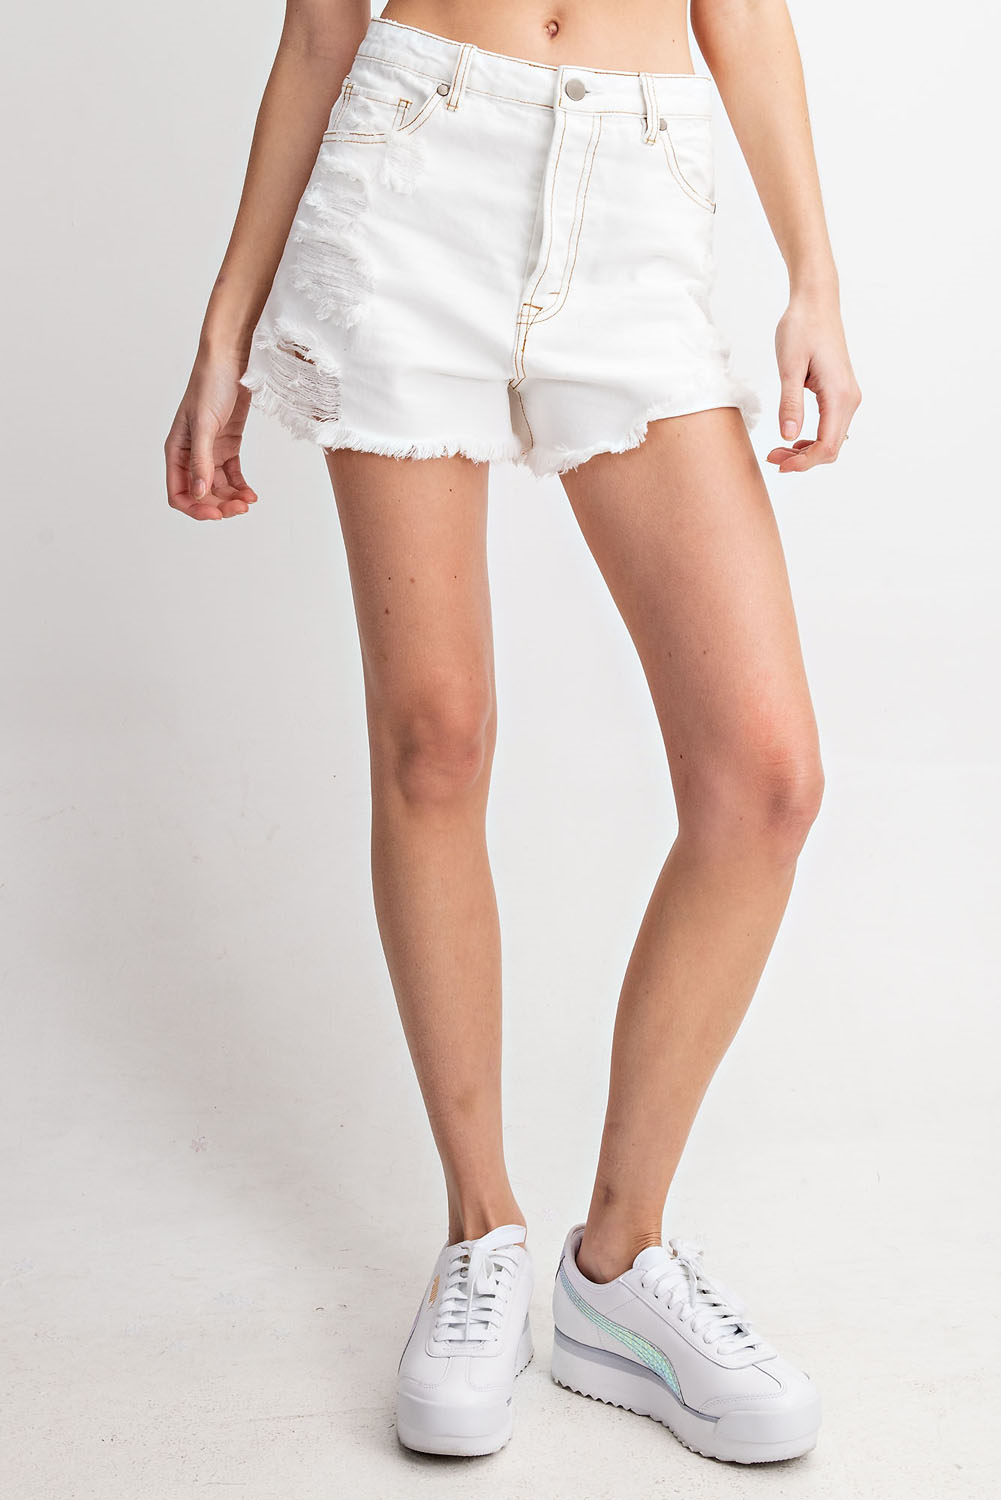 White Distressed Denim Jean Shorts